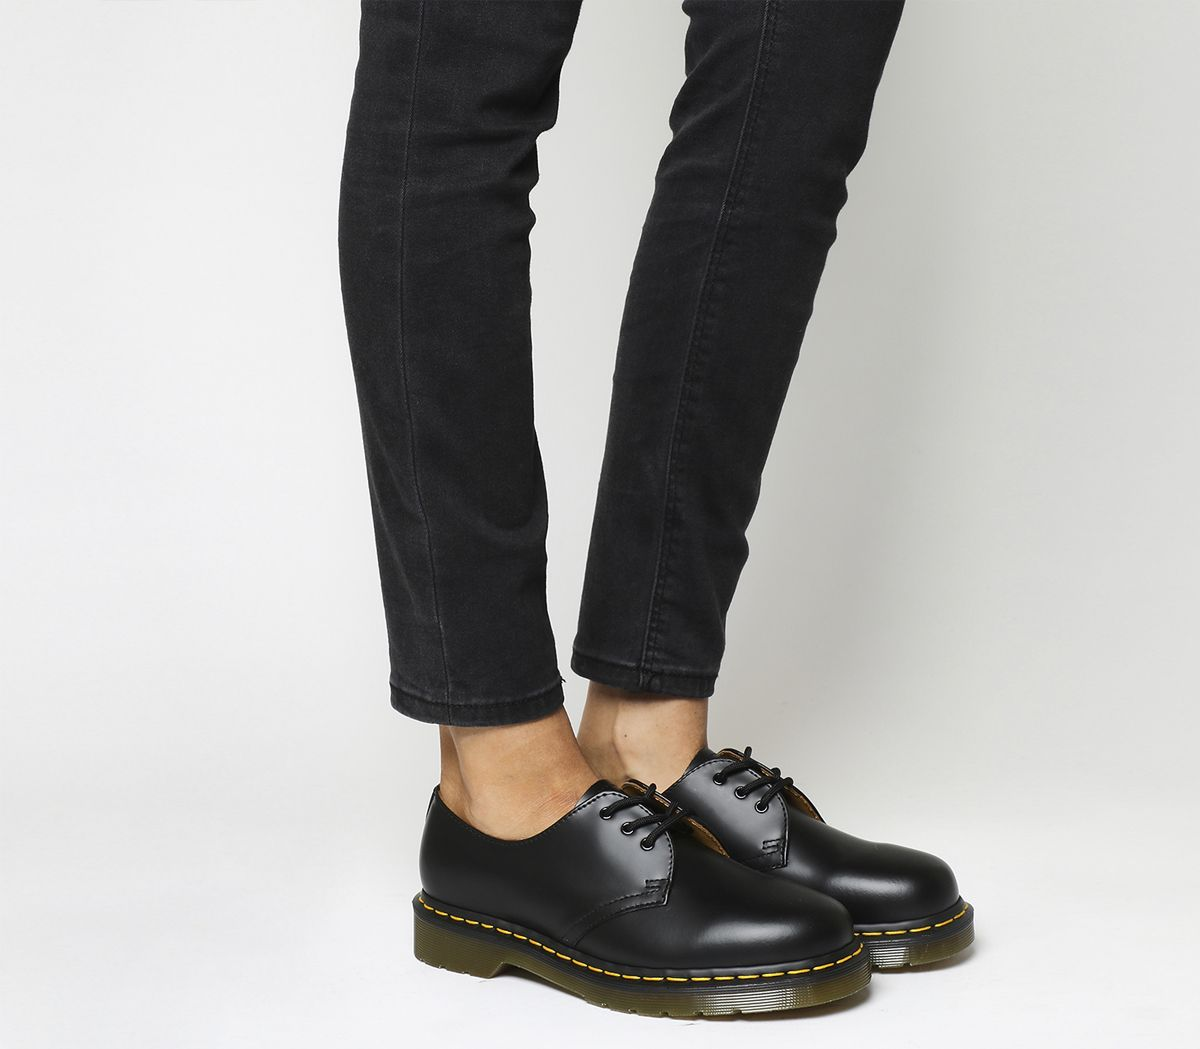 7648c63204b Dr. Martens 3 Eyelet Shoes Black - Flats